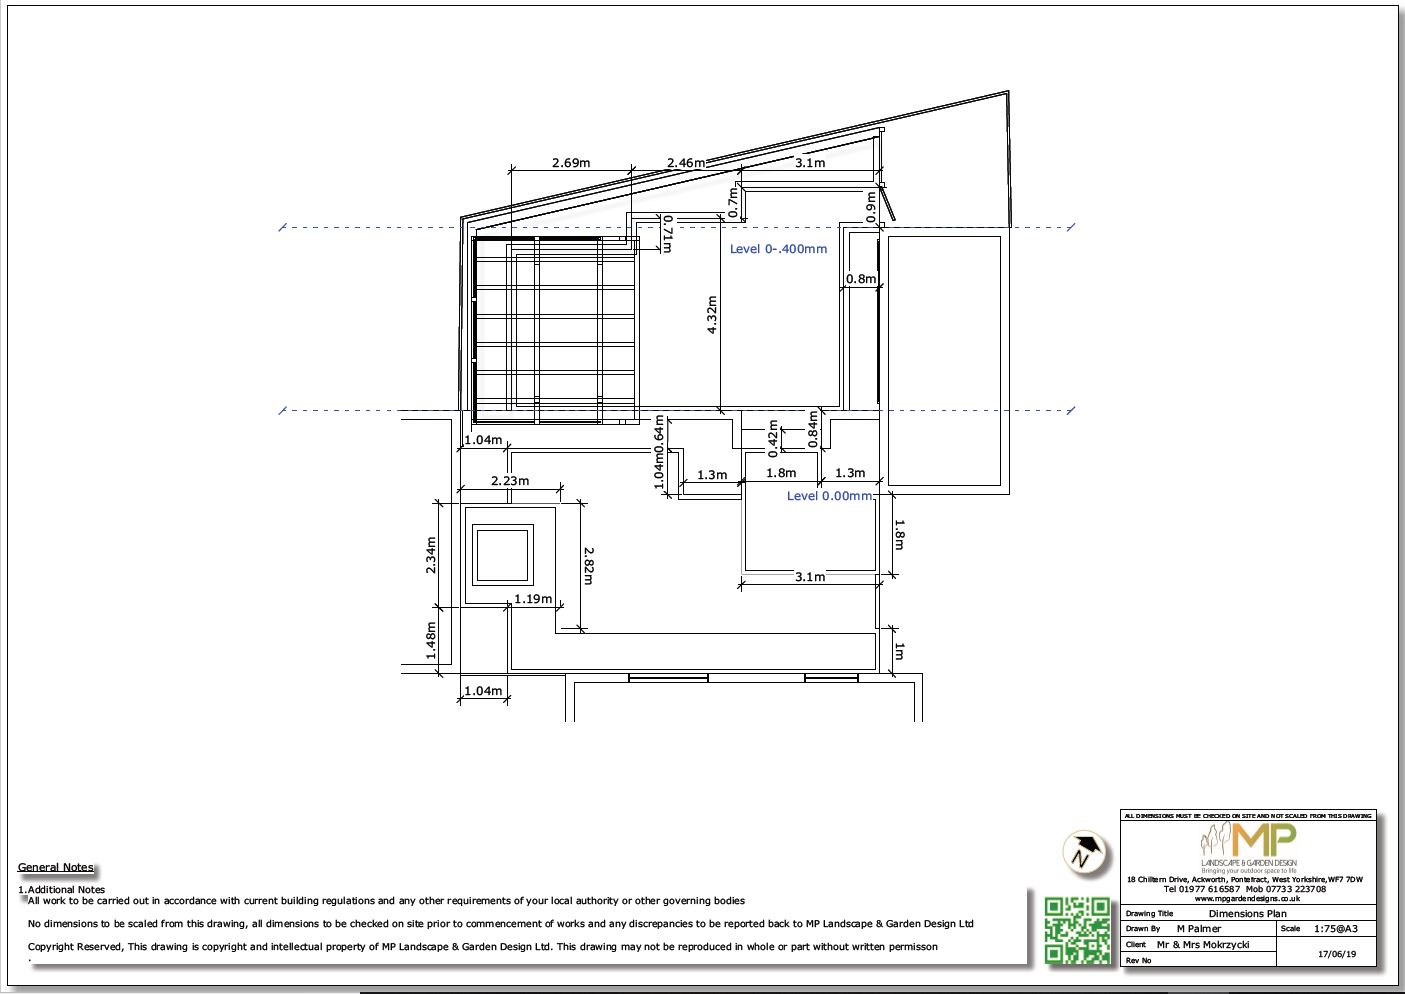 4, Dimensions plan for a property in Normanton, West Yorkshire.